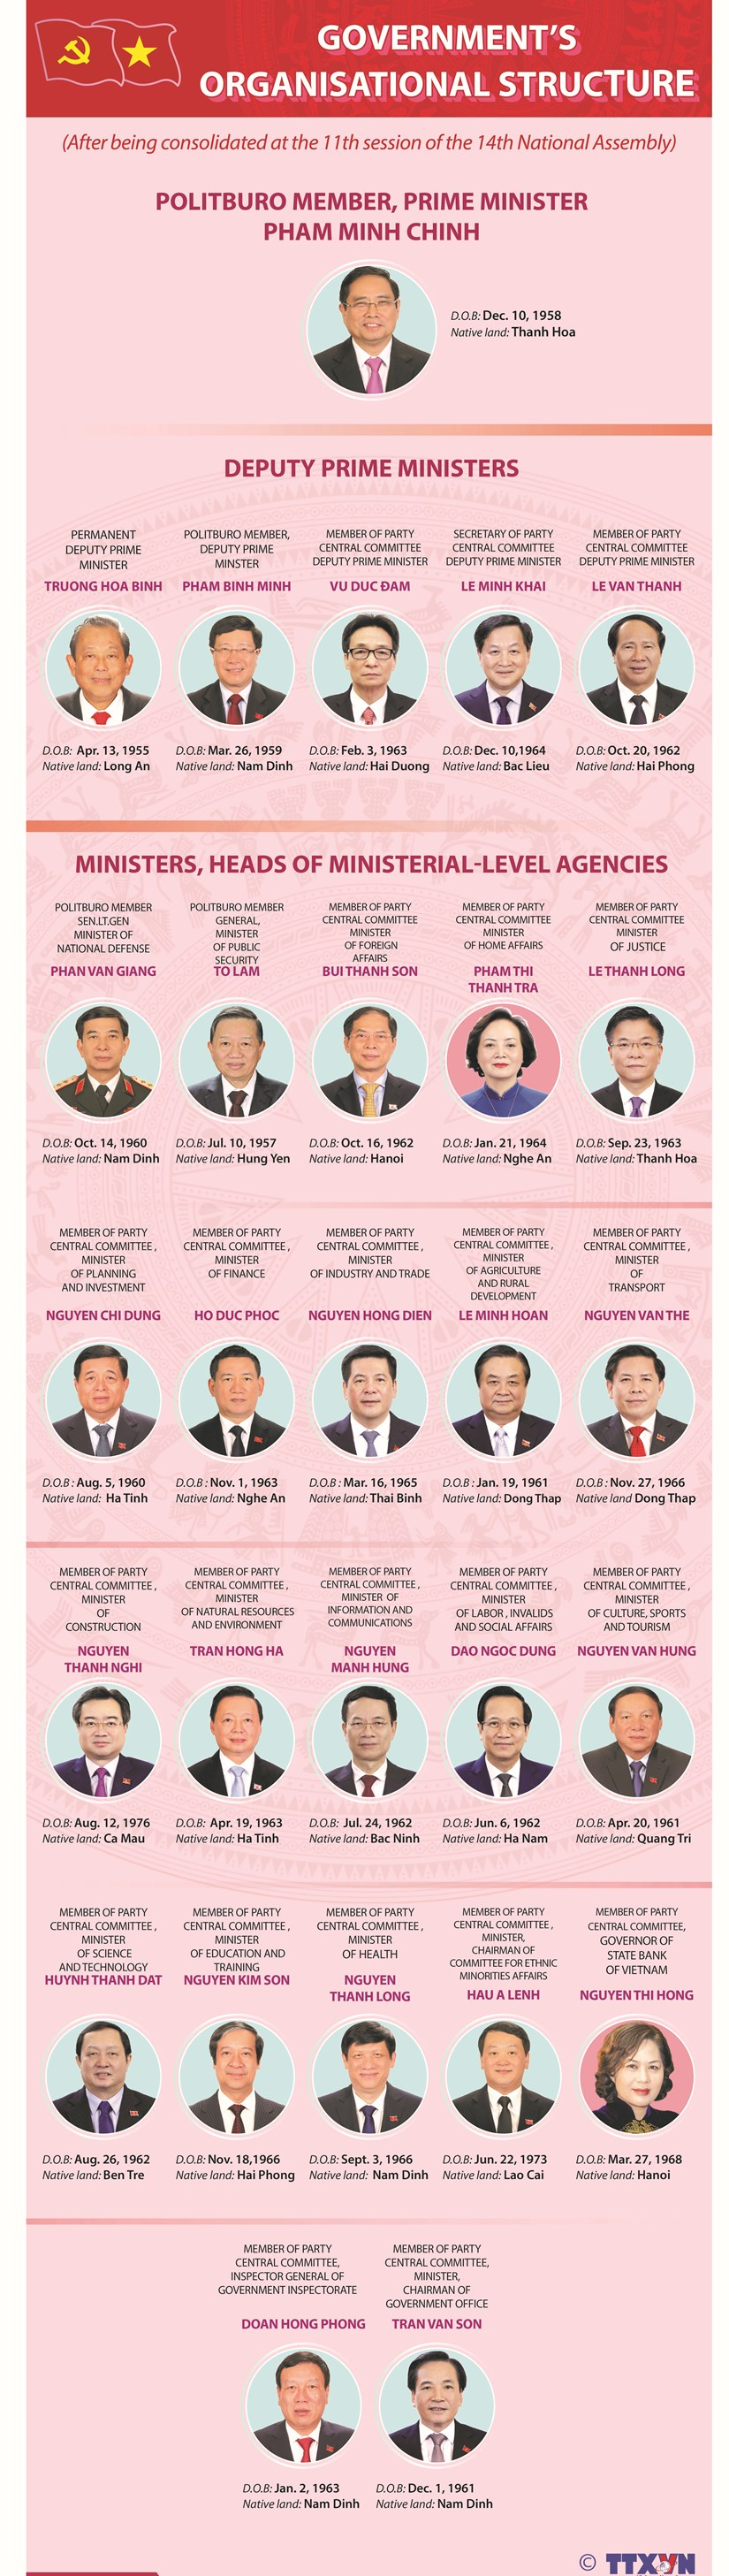 Organisational structure of Government hinh anh 1